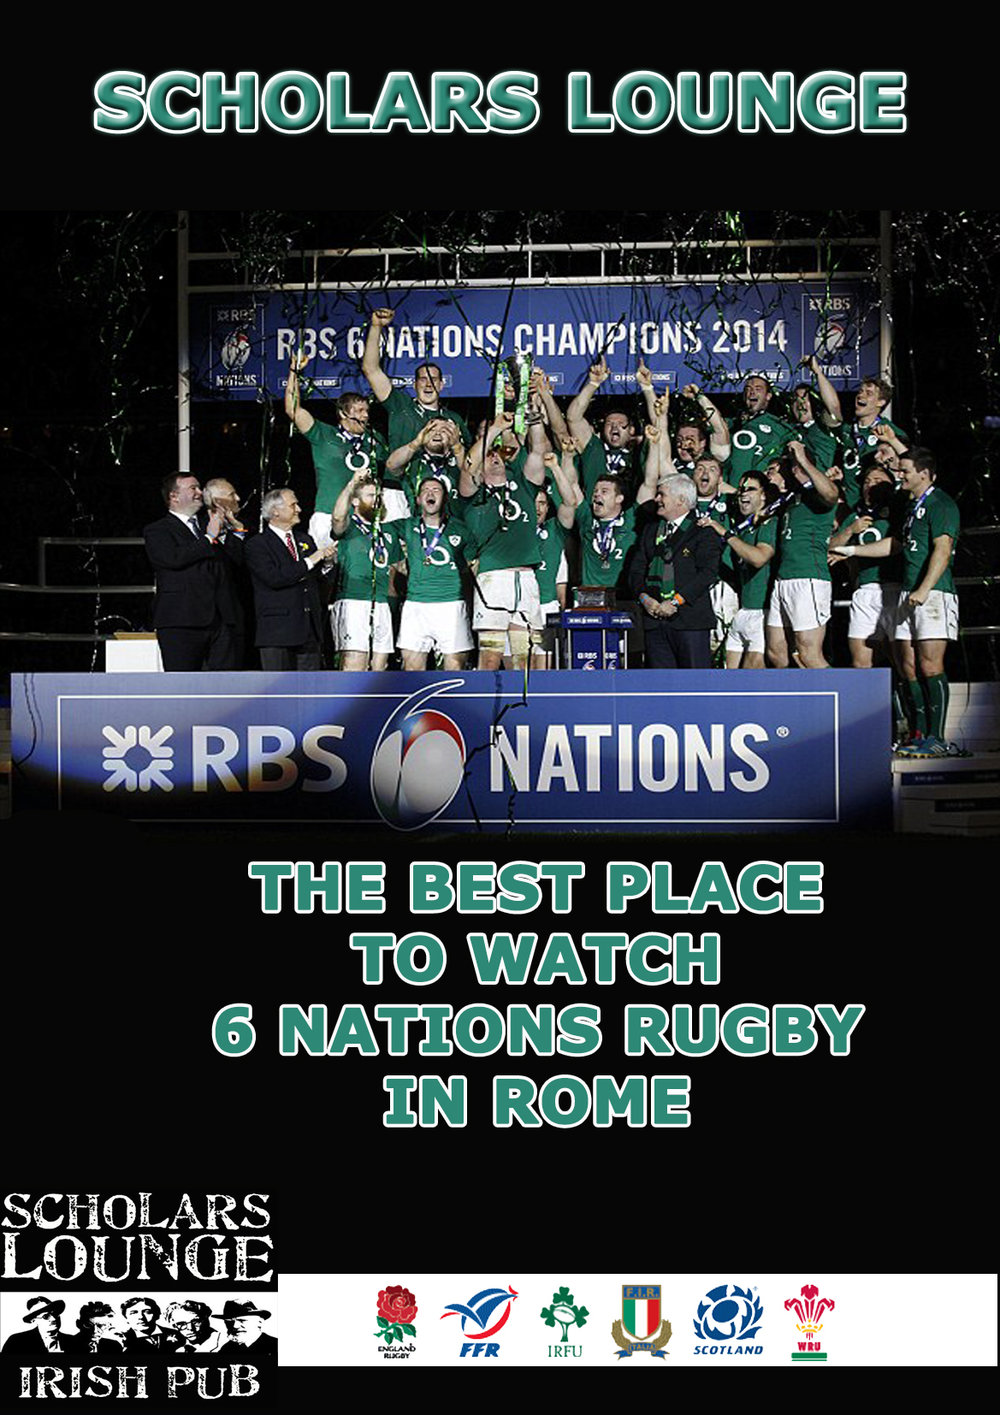 6 nations 2016 ireblack.jpg